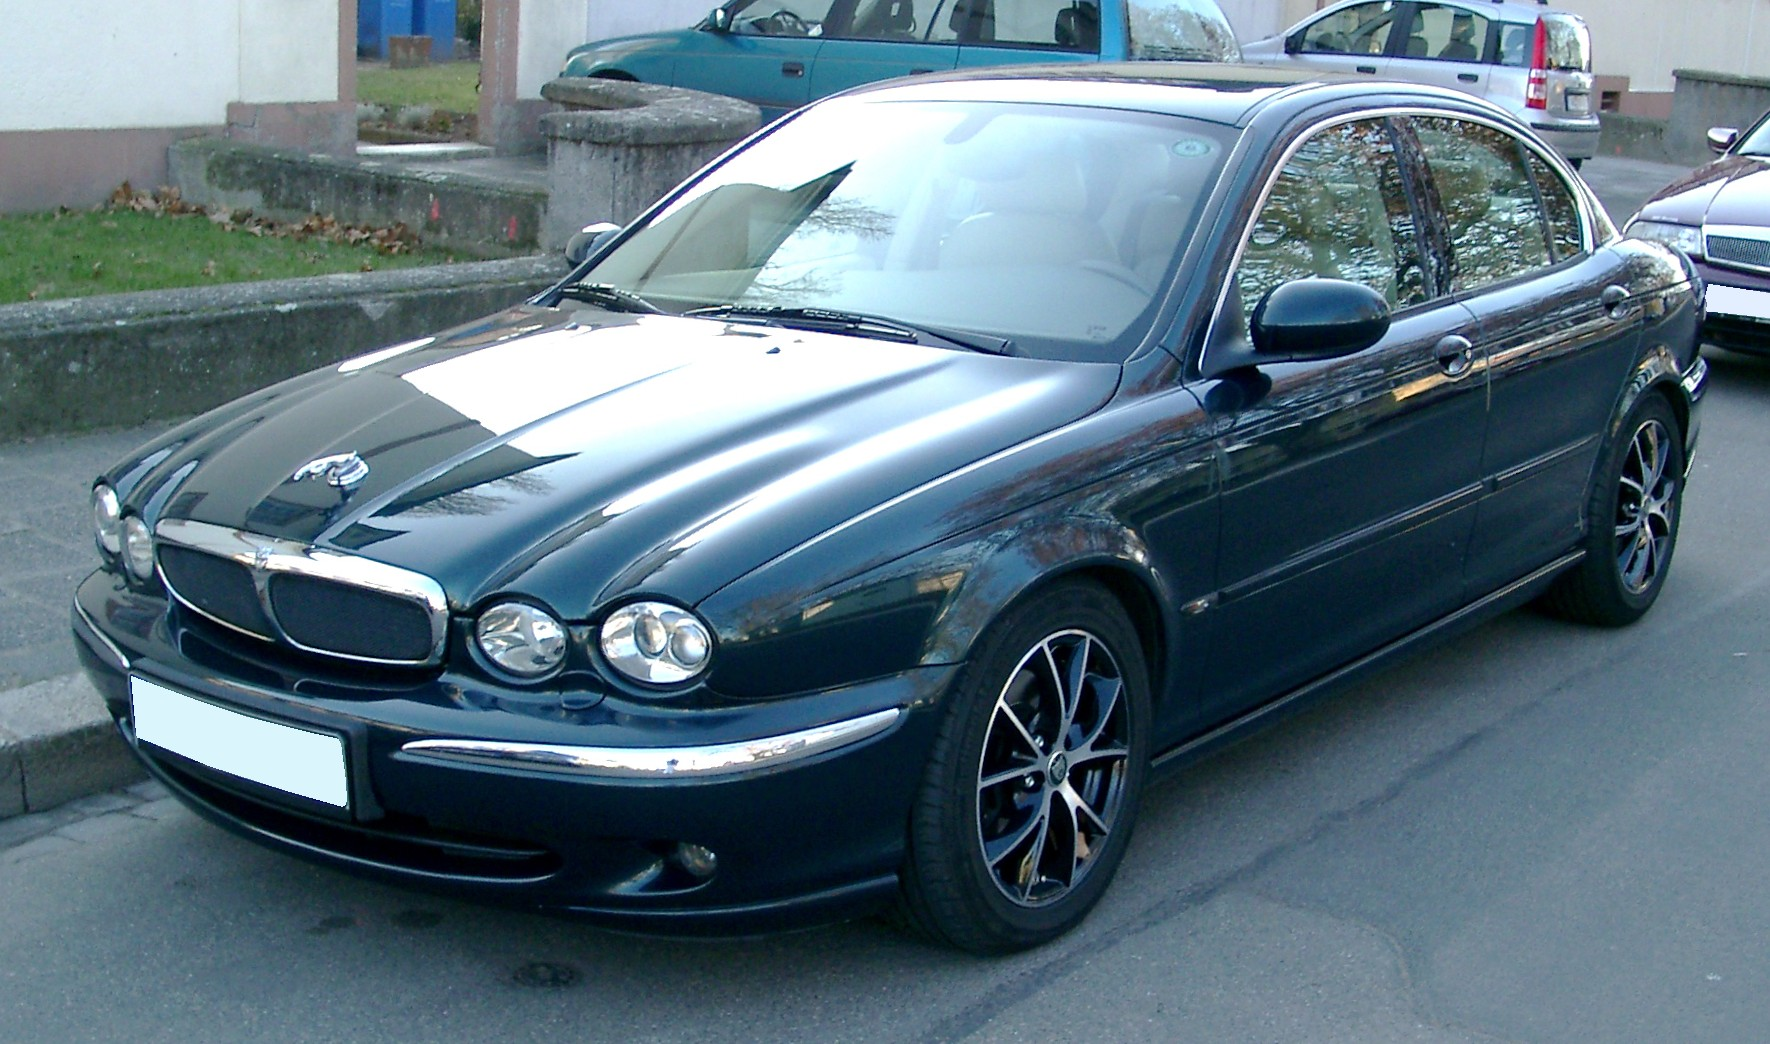 2007 Jaguar X-type #1